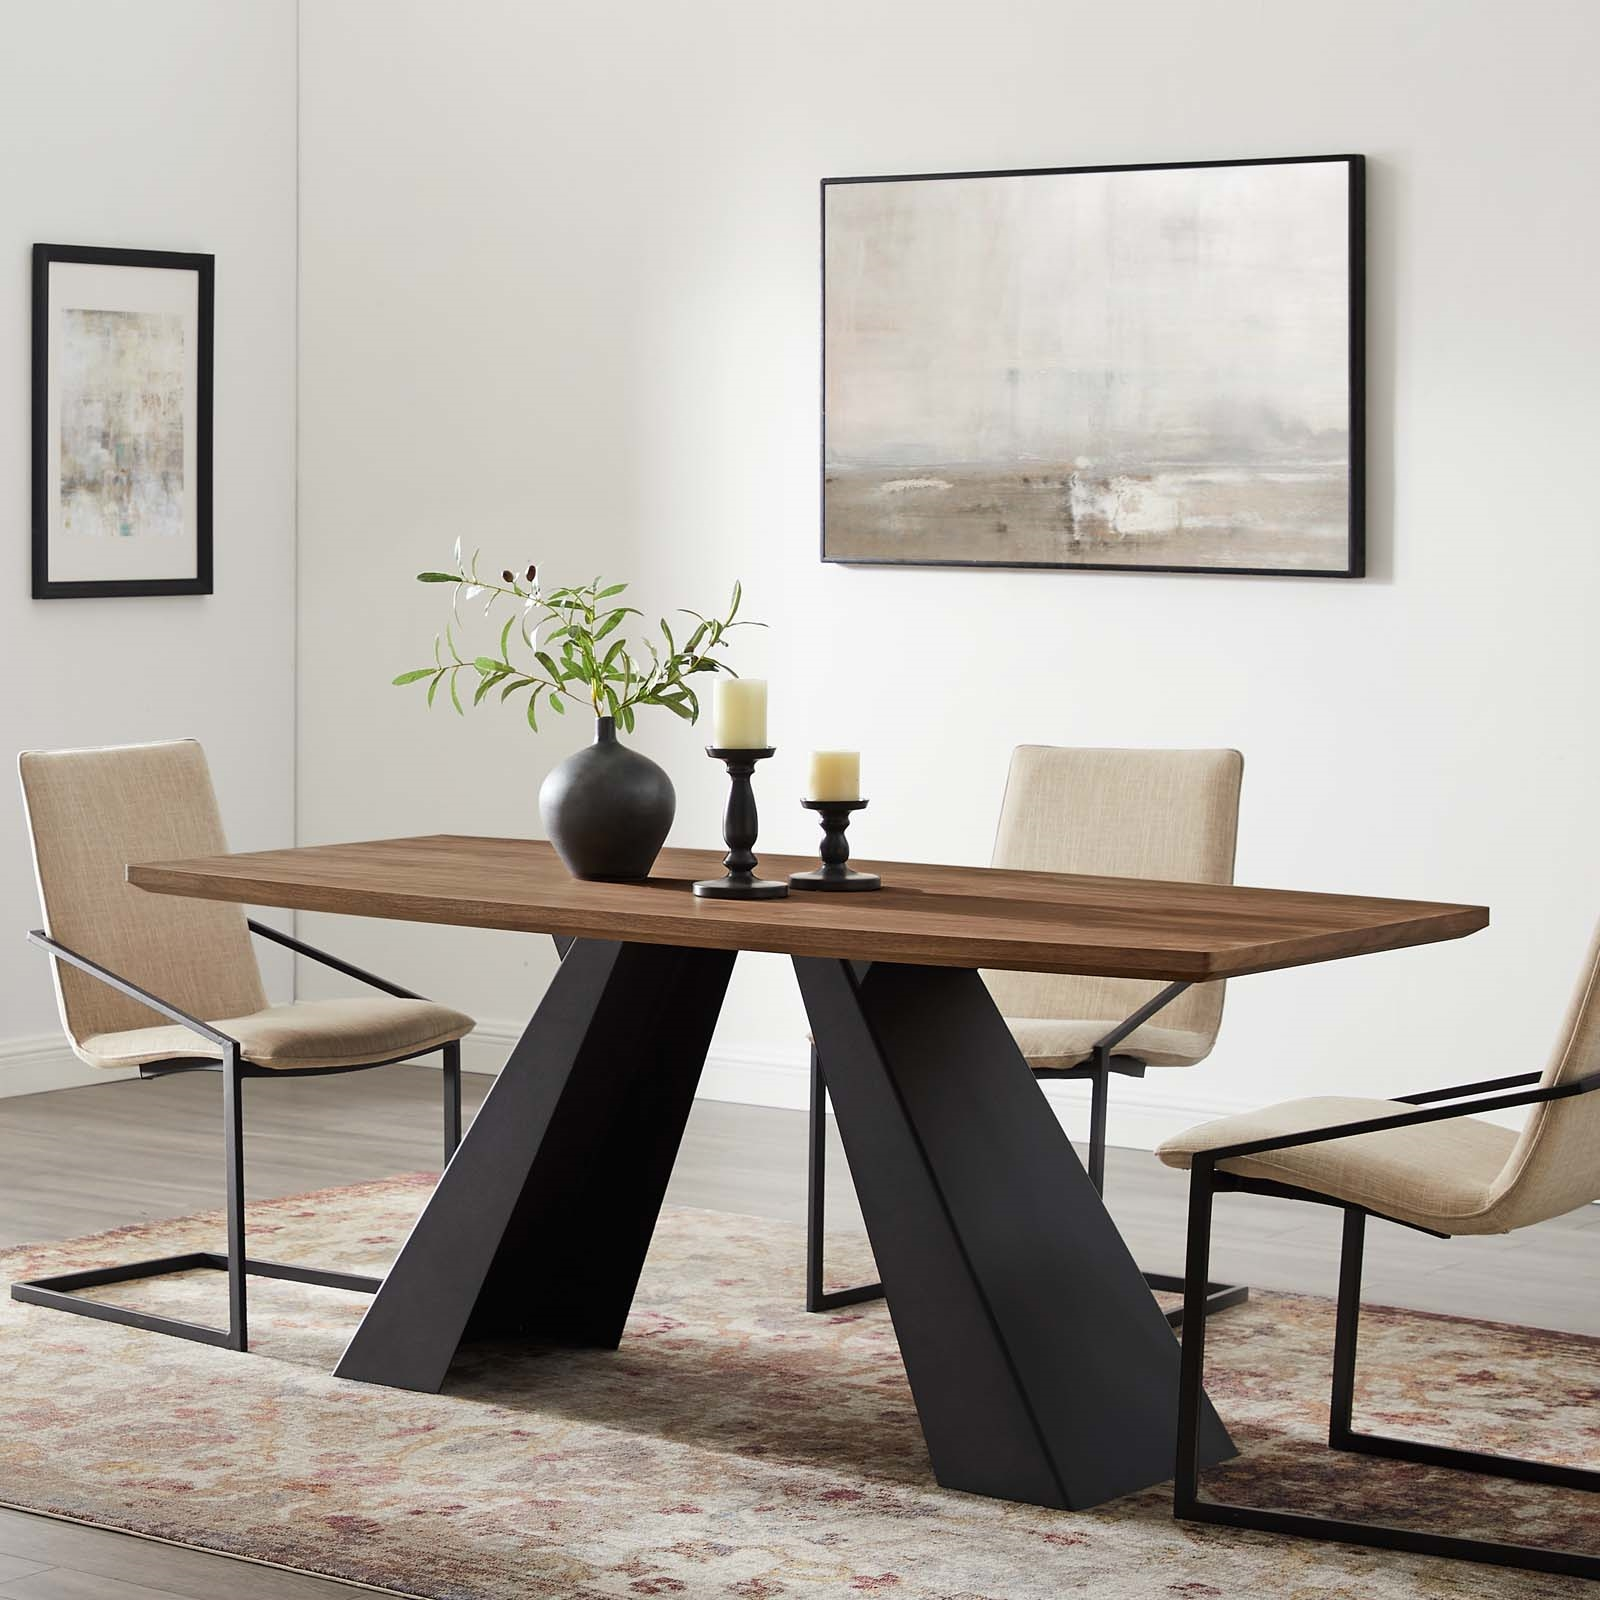 Elevate Dining Table in Walnut